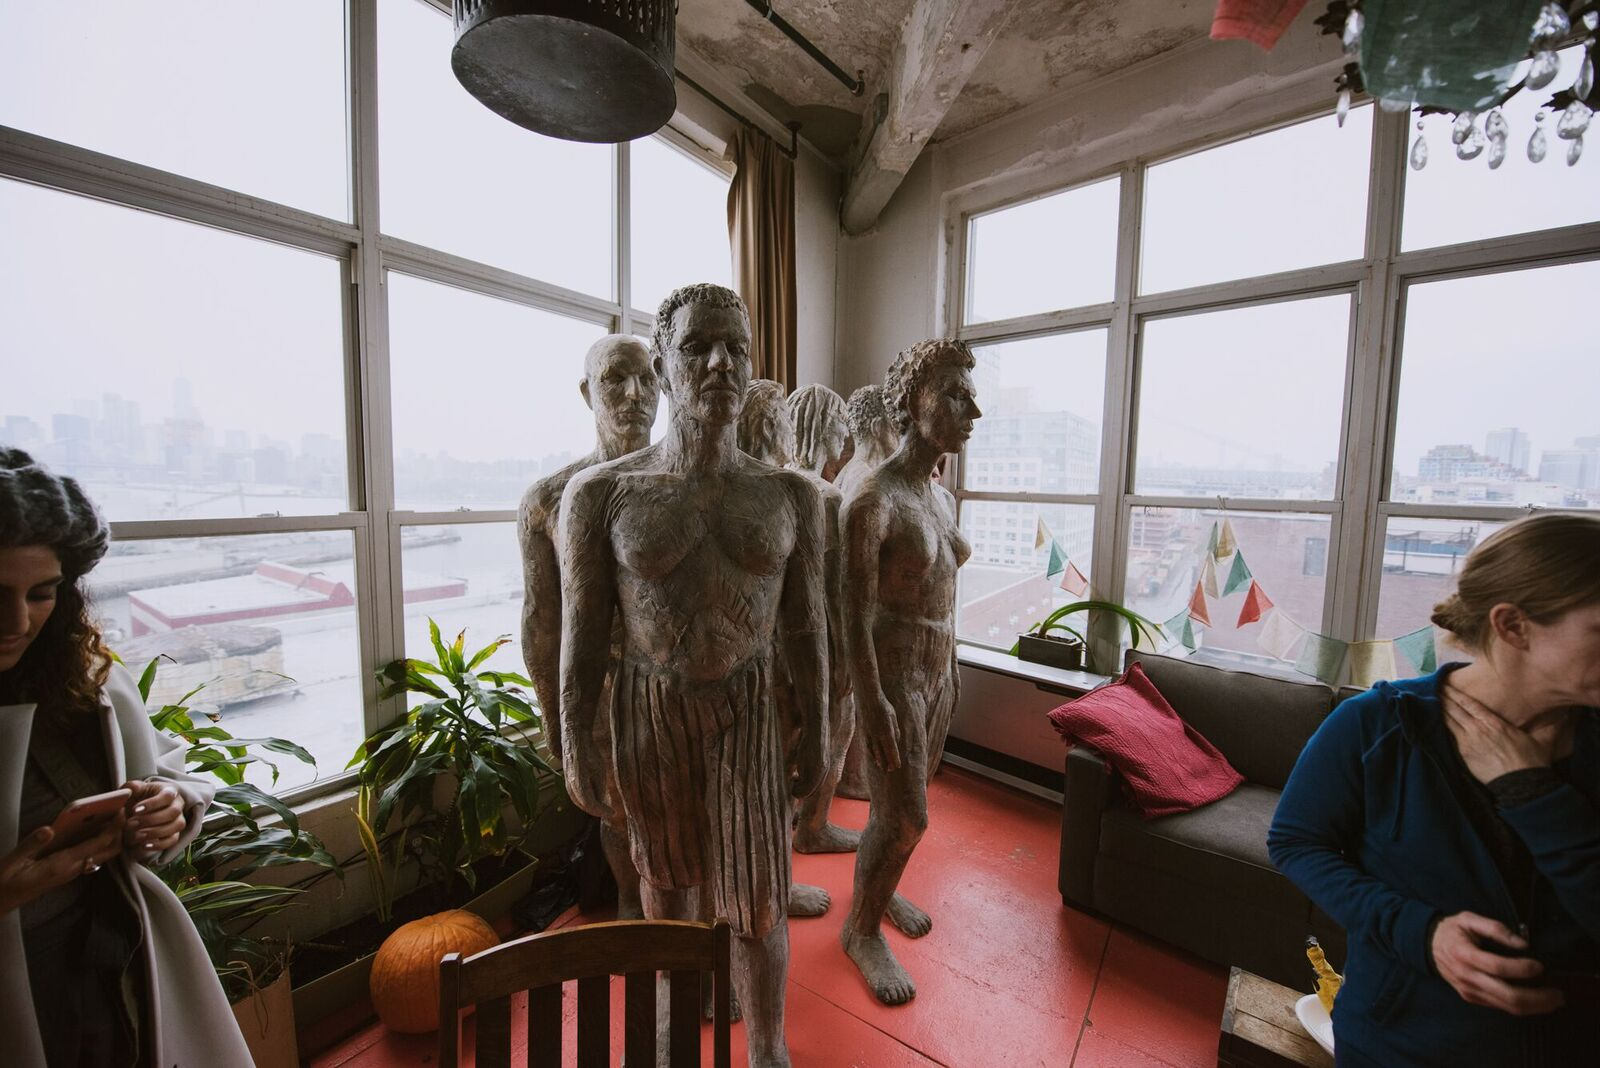 Sculptures by Deborah Masters. Photo: Randall Bellows III